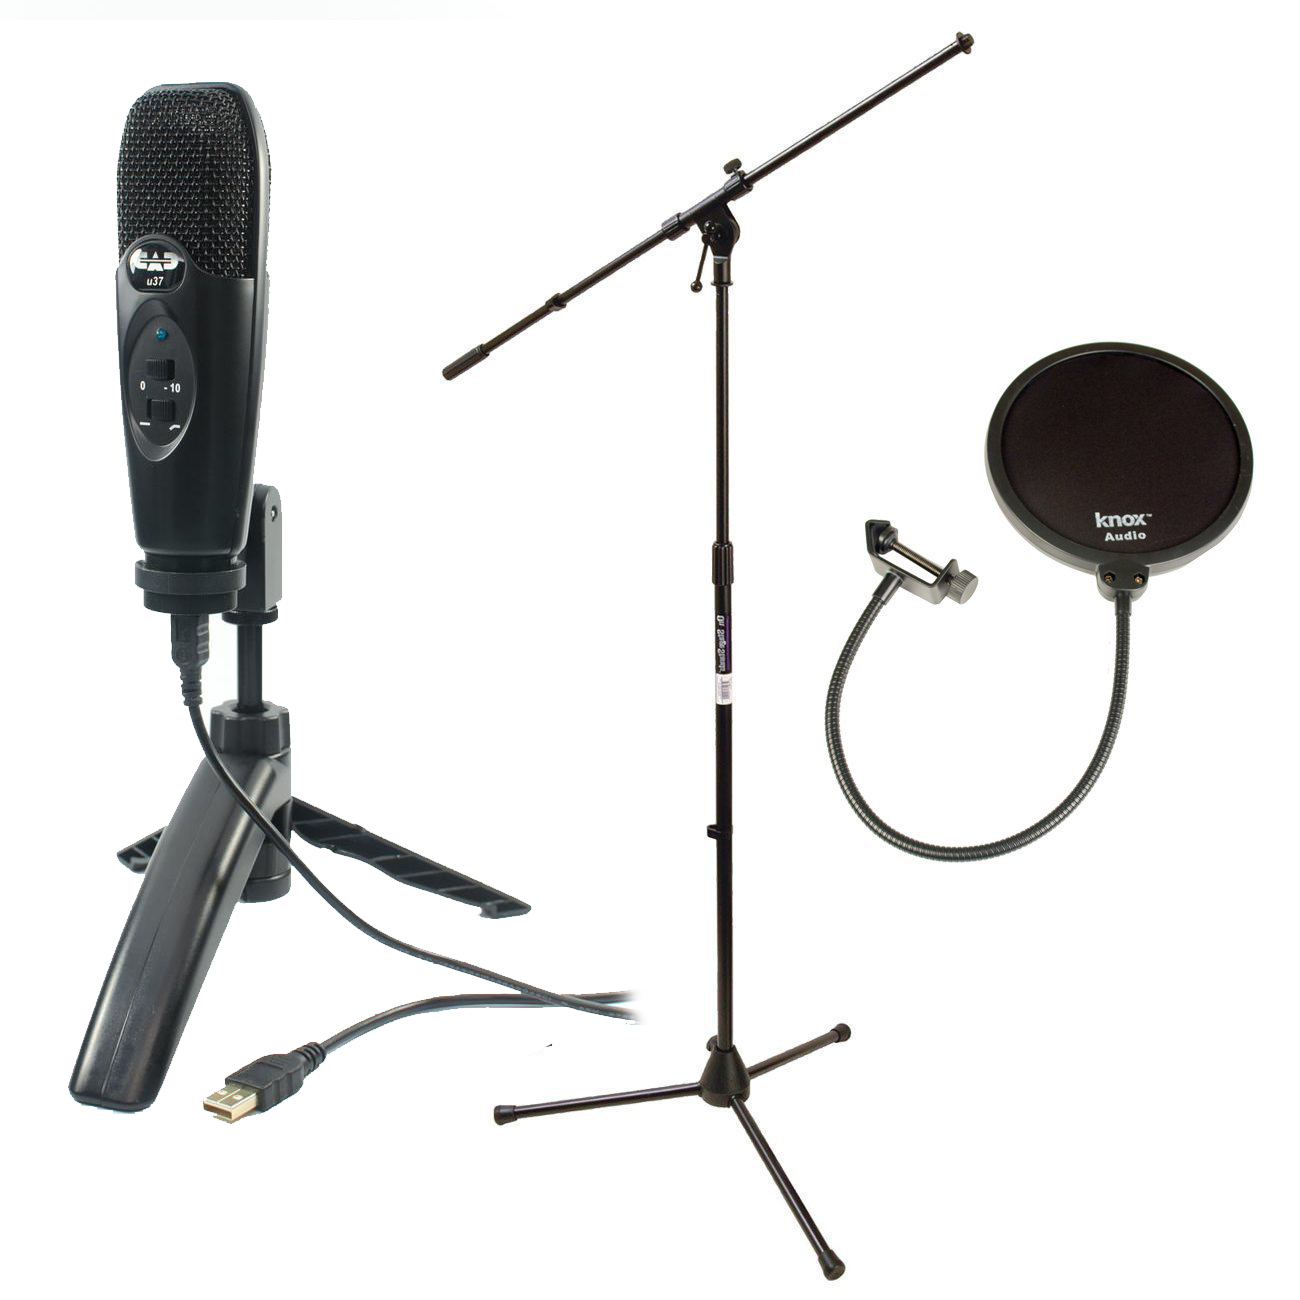 Cad U37 USB Condenser Microphone (Black) with Boom Microphone Stand & Pop Filter